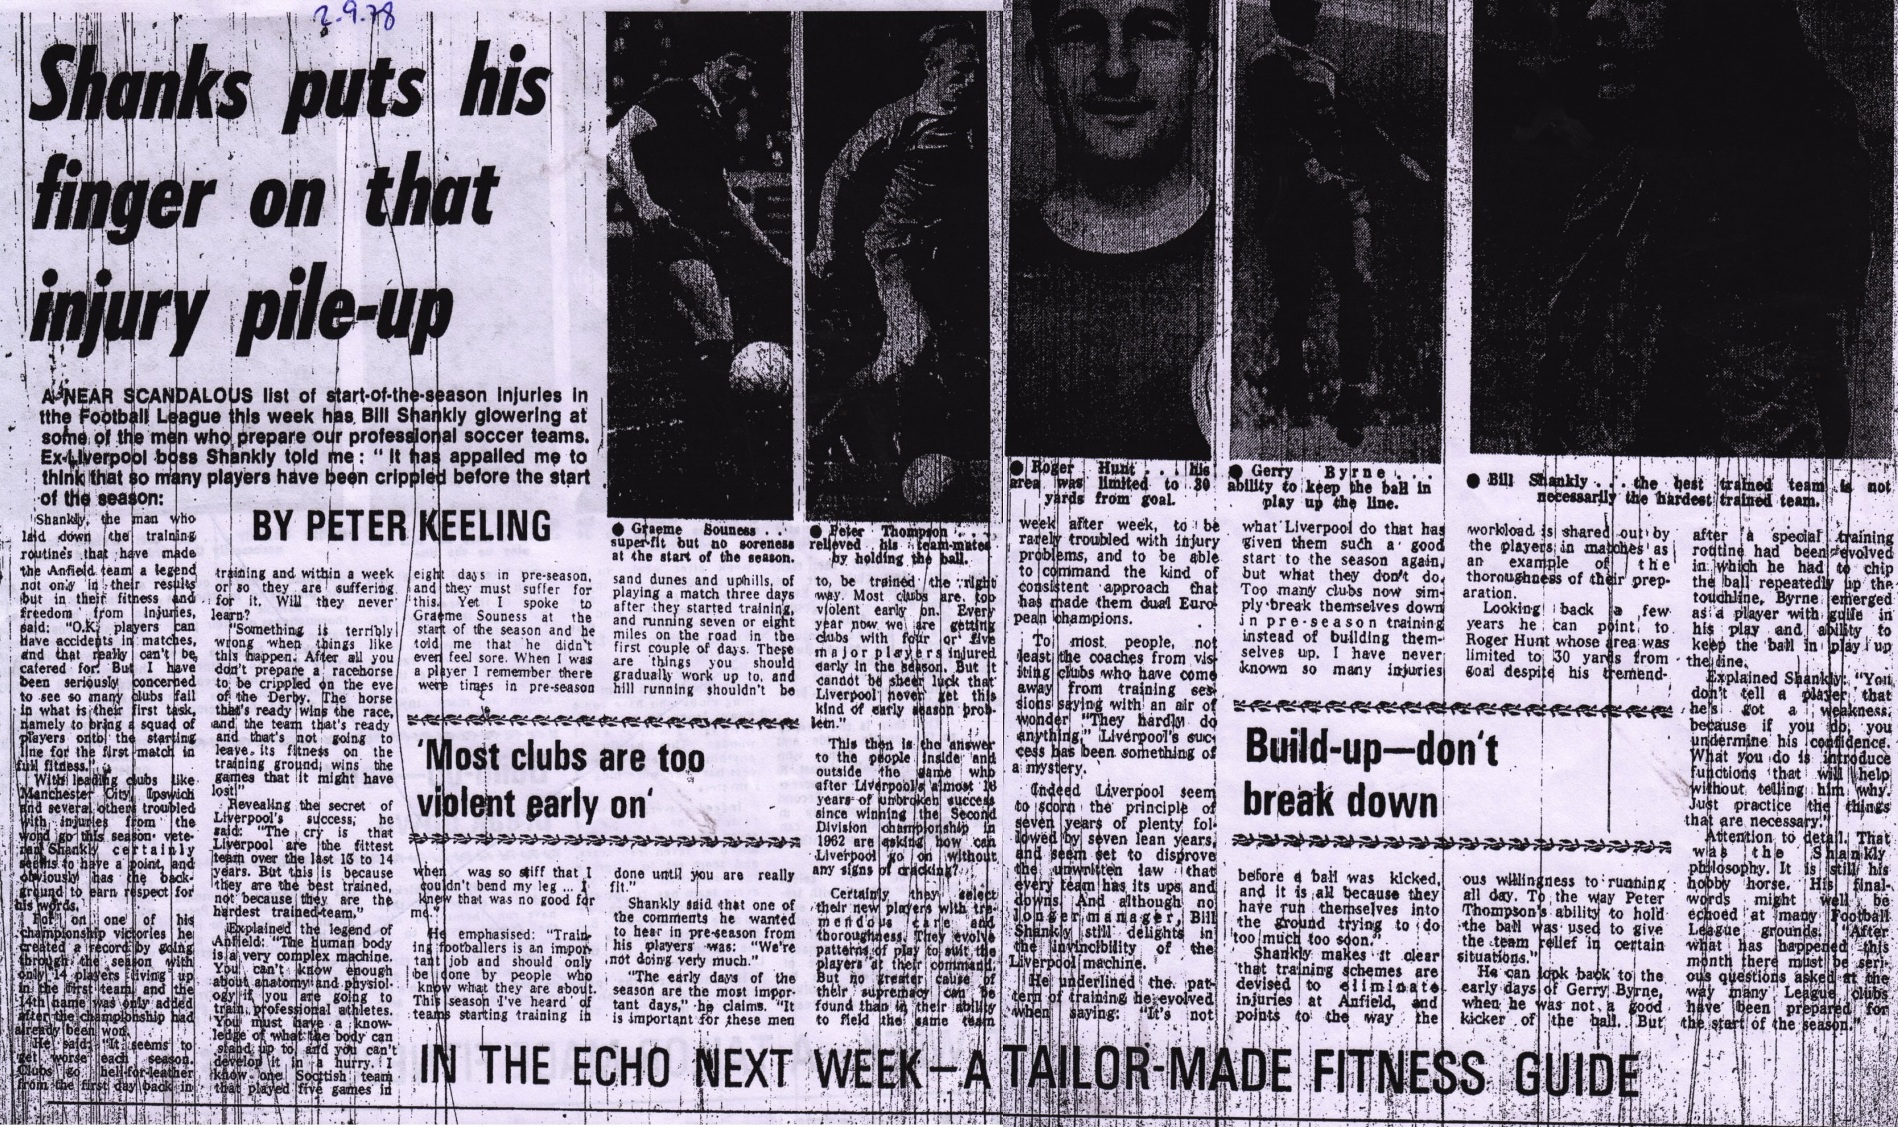 Shanks puts his finger on the injury pile-up - 2 September 1978